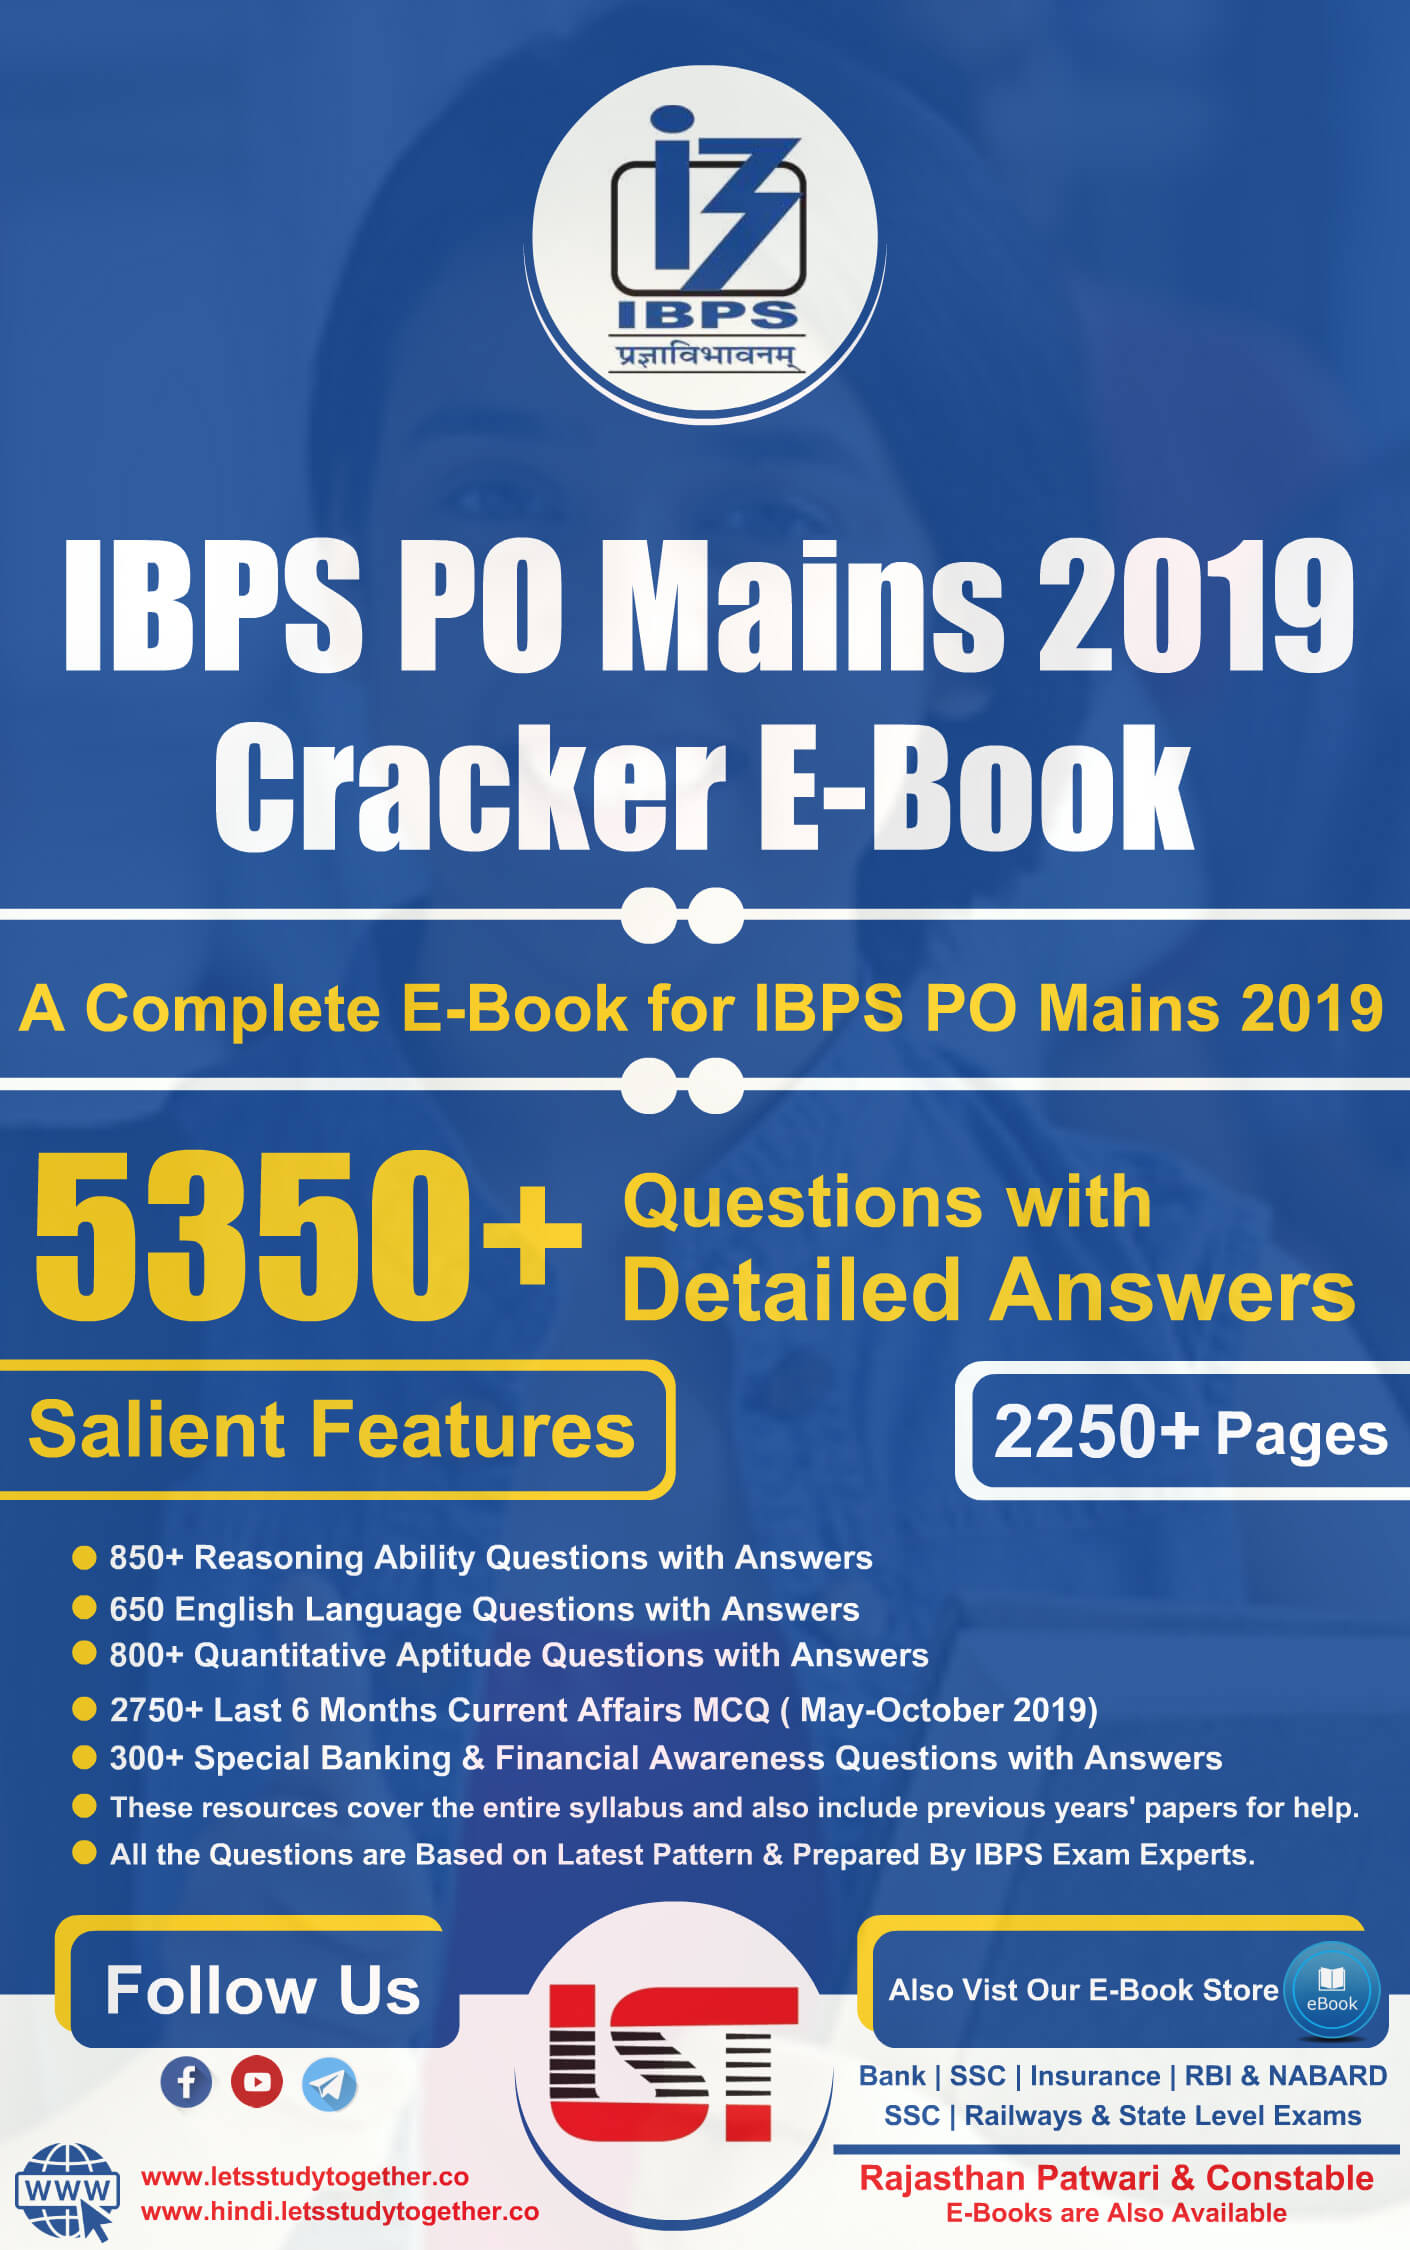 IBPS PO Mains Cracker Book 2019 PDF